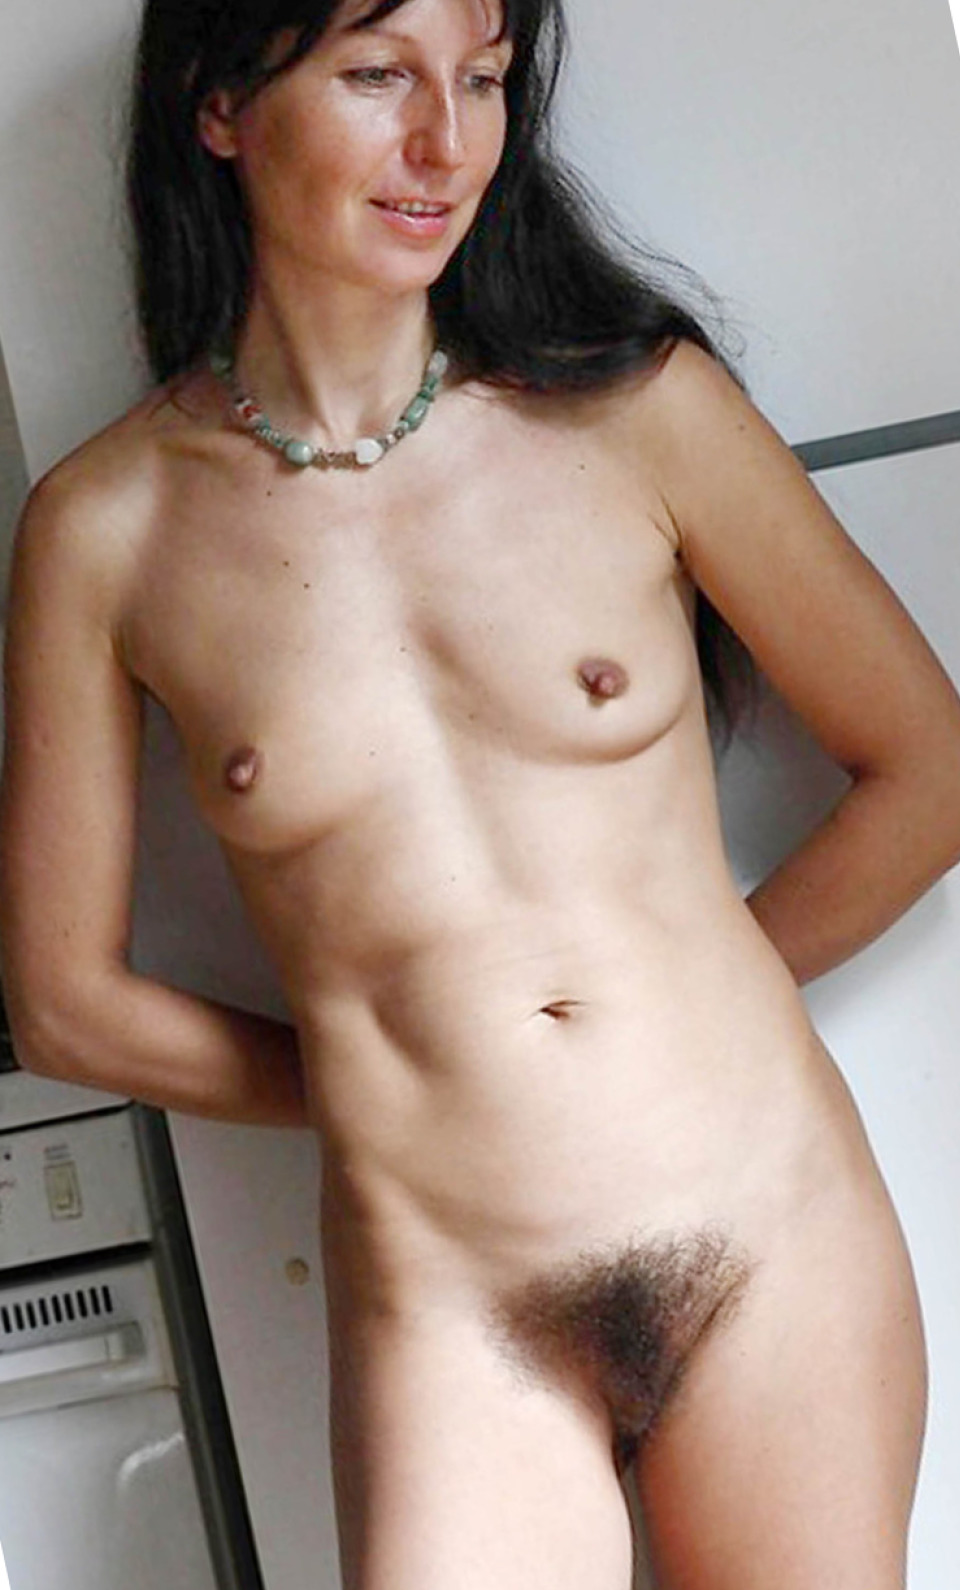 For that Skinny naked mature women pics message